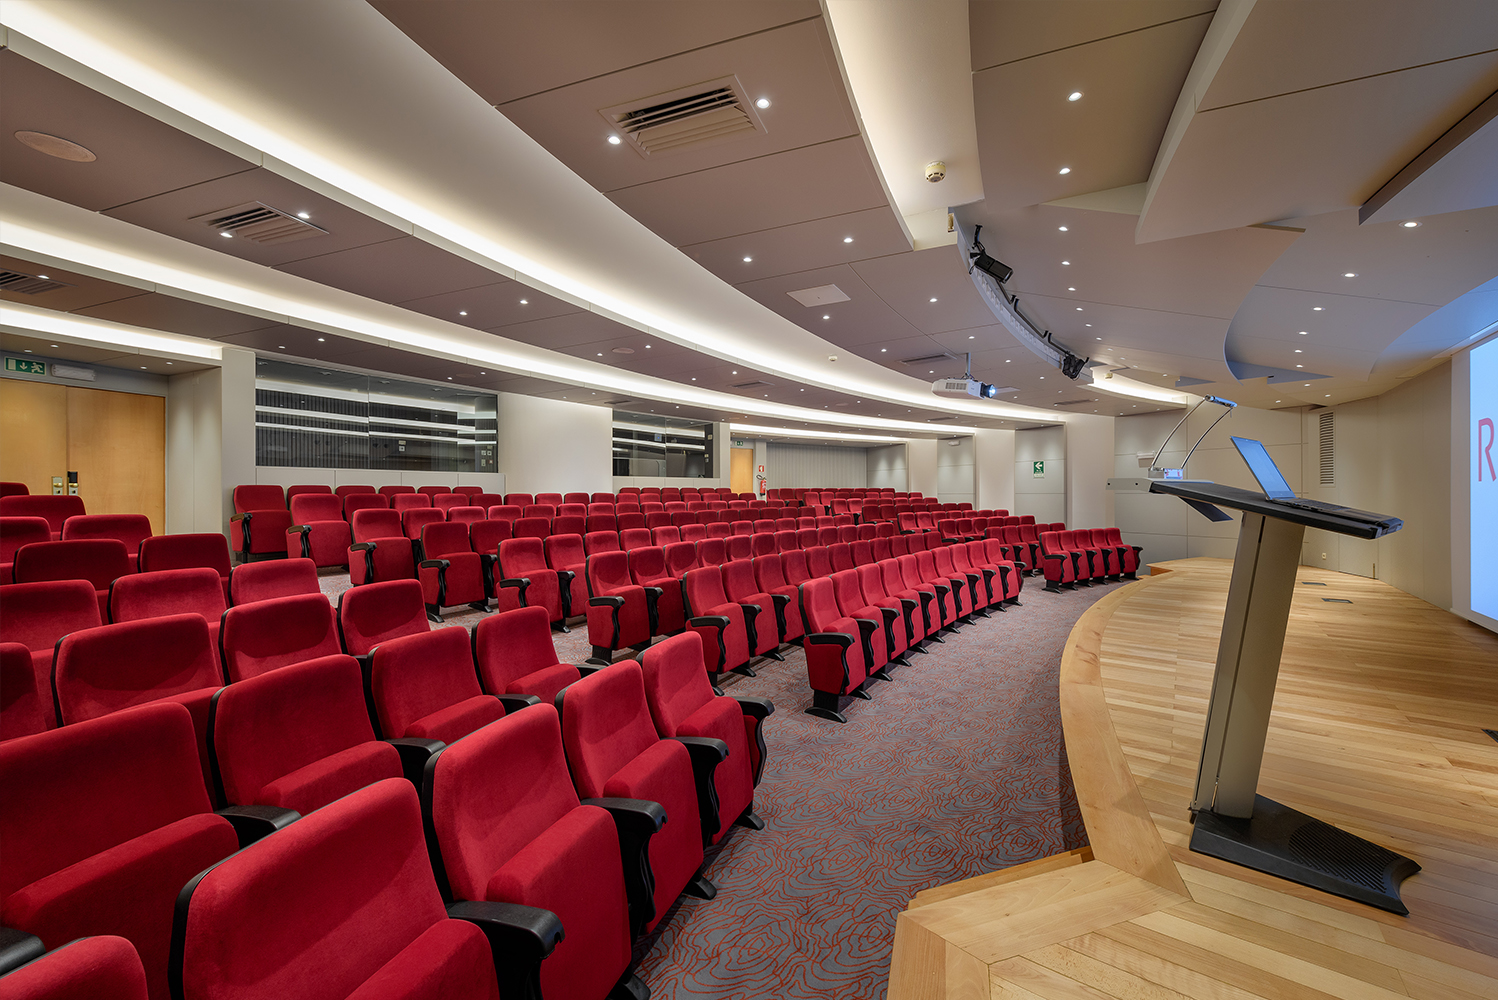 The rooms can be configured in different ways to increase their area and capacity.